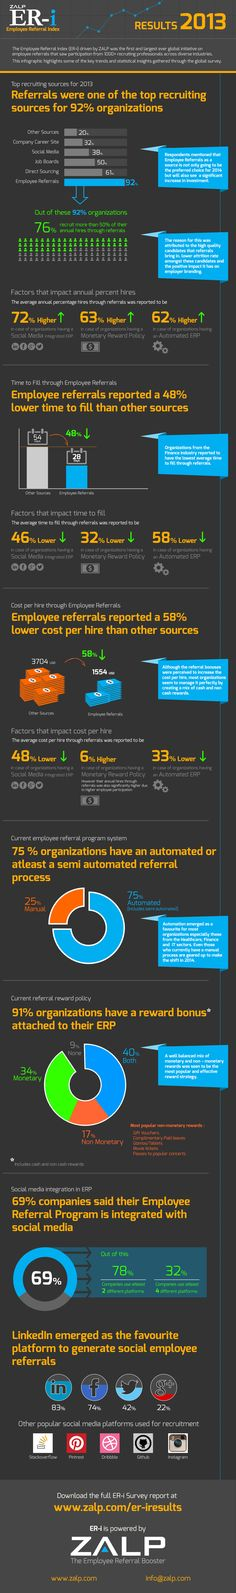 2013 ZALP Survey Results on Employee Referrals -  the impact of social media on the referral programs